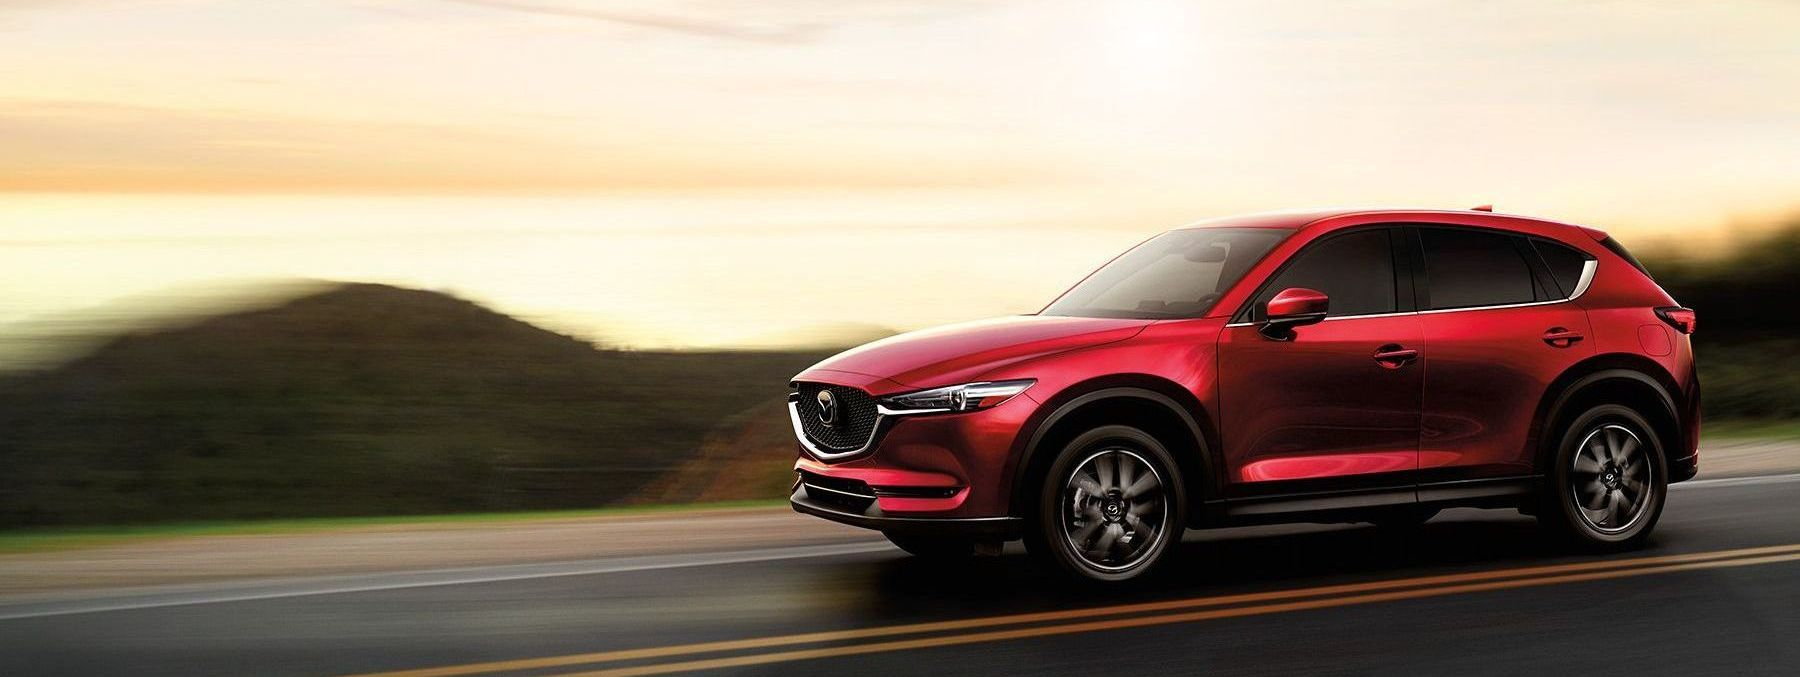 2017 mazda cx 5 for sale near roseville ca mazda of elk grove. Black Bedroom Furniture Sets. Home Design Ideas